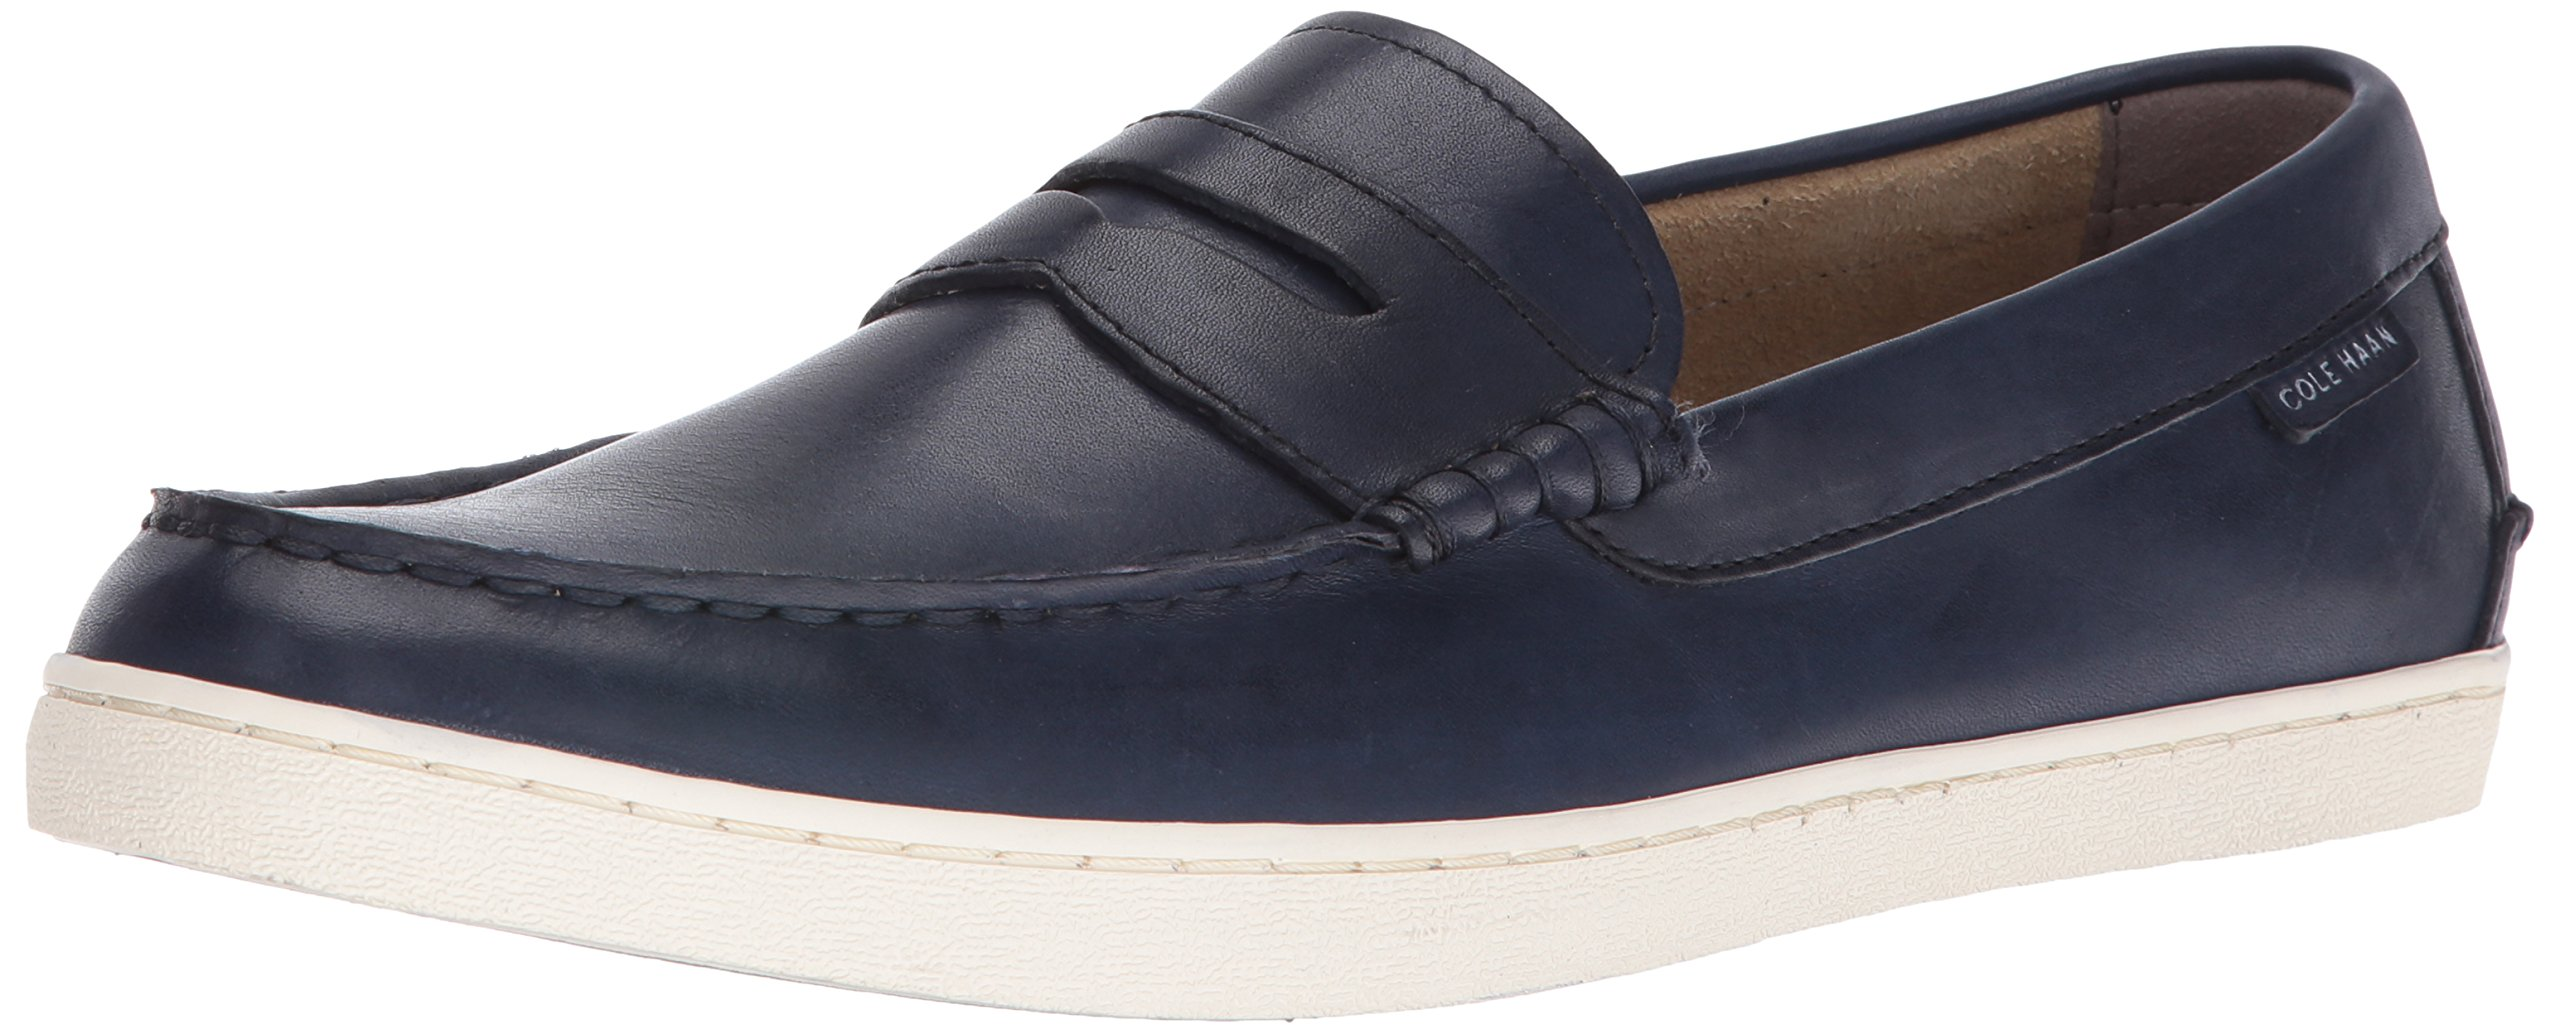 Cole Haan Men's Pinch Weekender Hand Stain Loafer, Blazer Blue Handstain, 10 Medium US